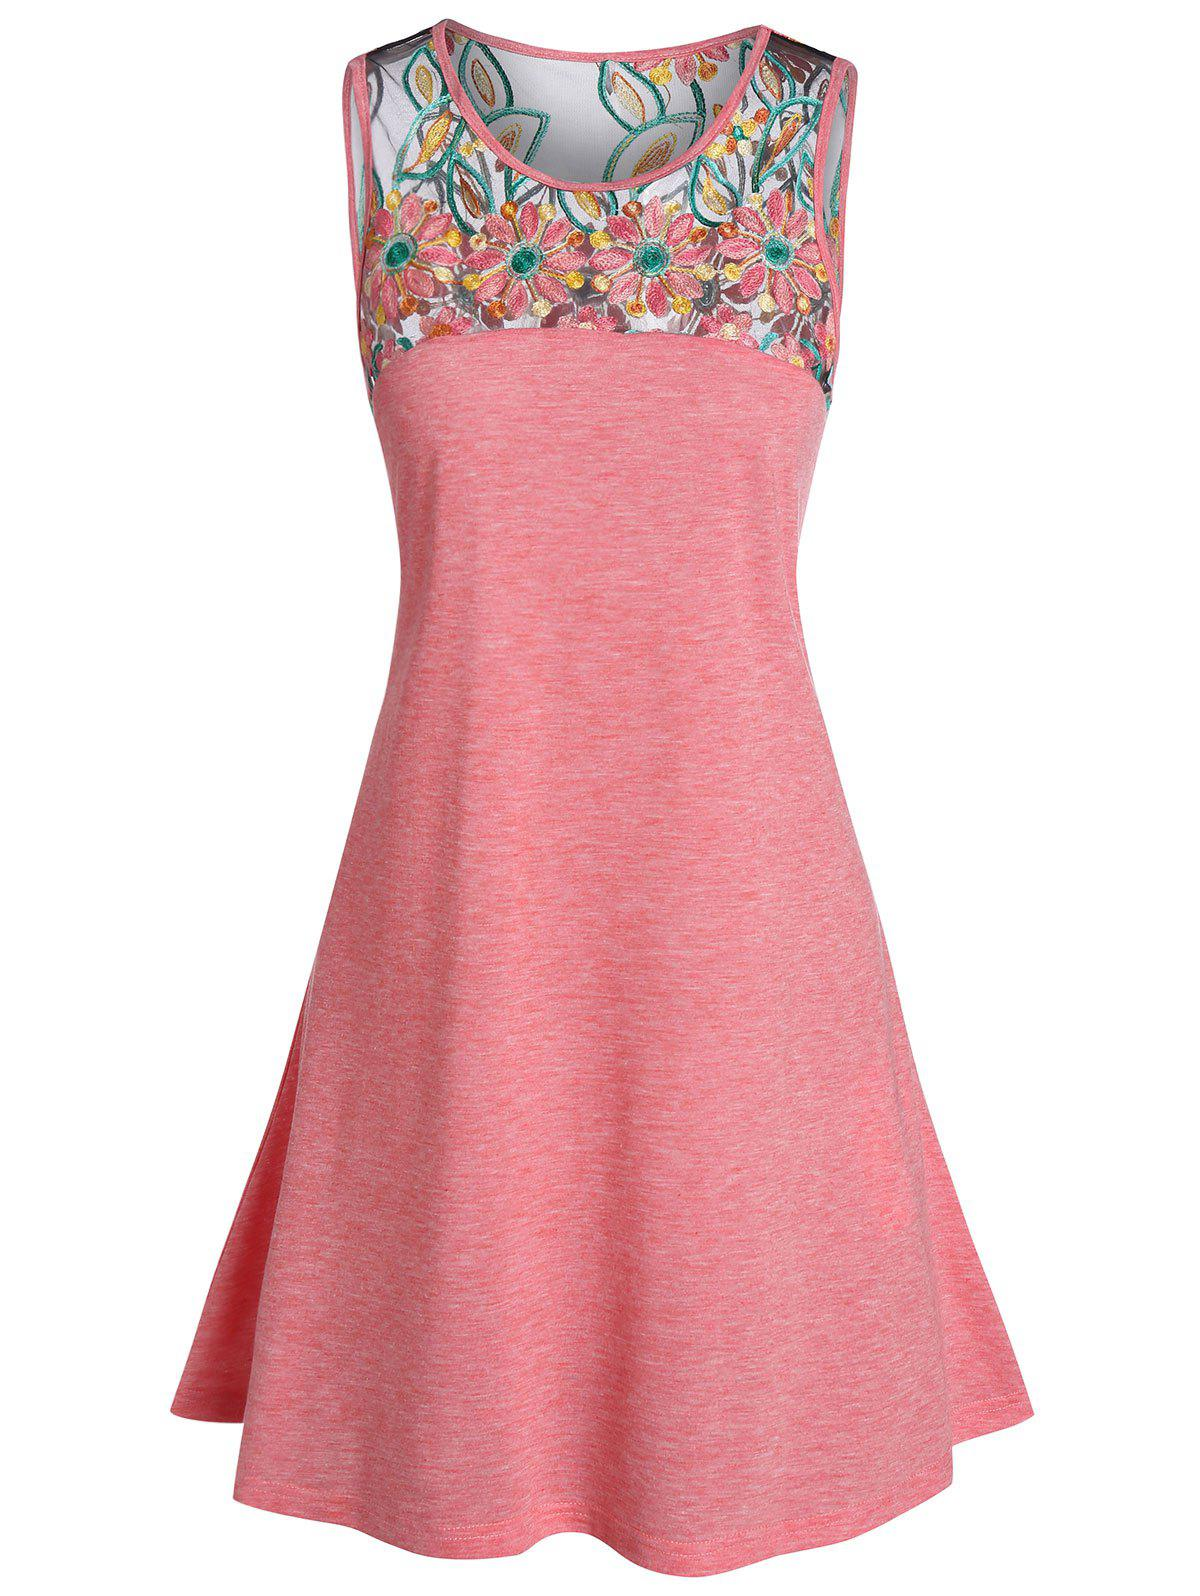 Embroidered Mini Tank Dress - PINK 3XL